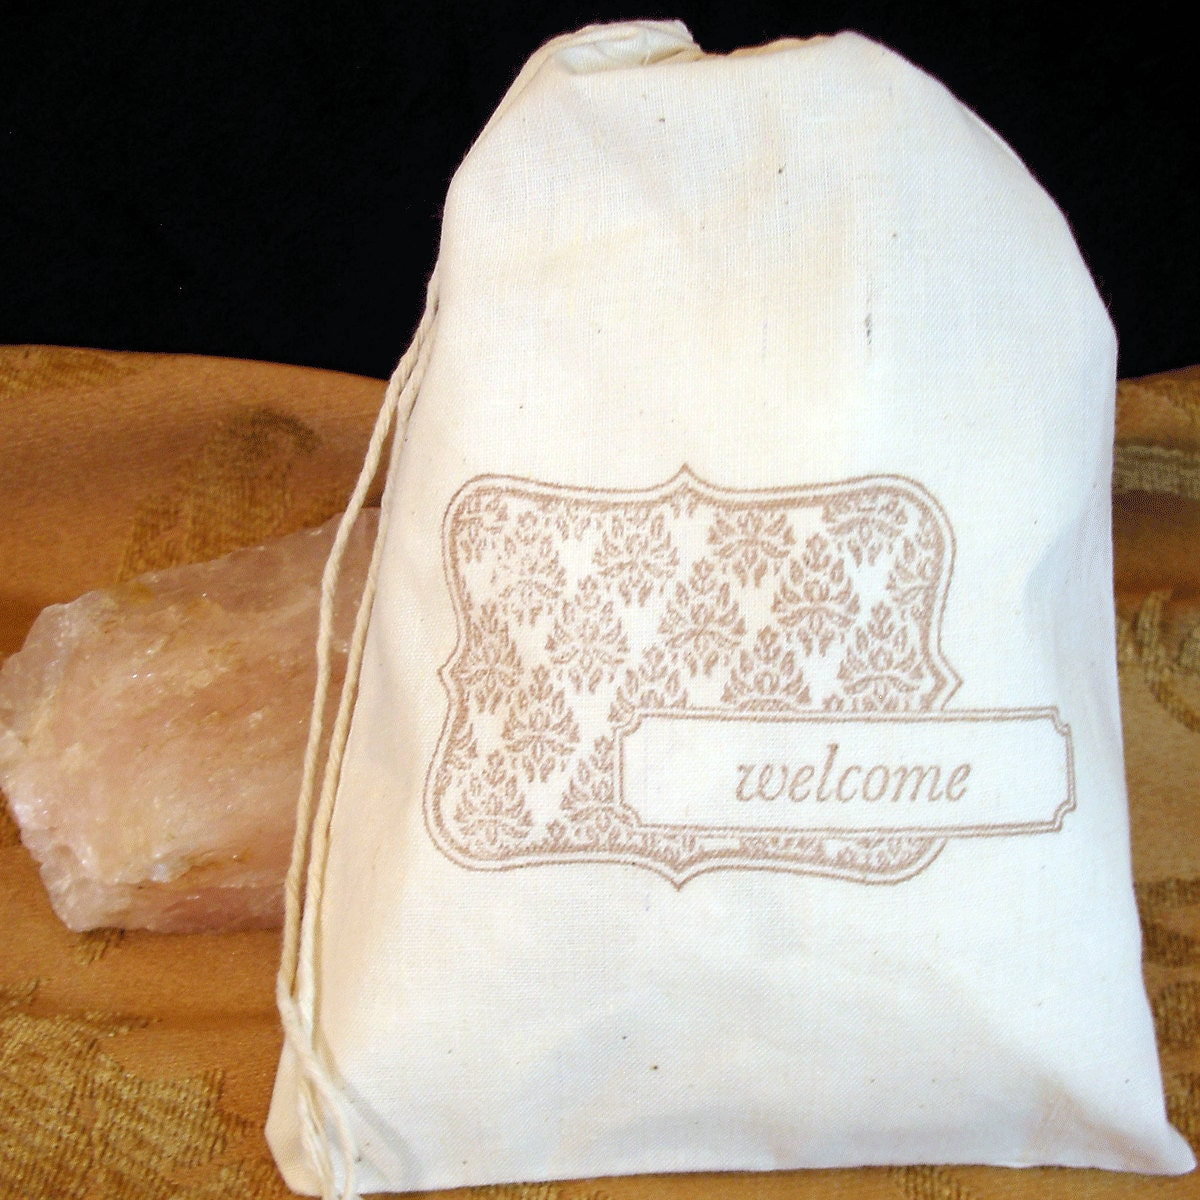 Welcome Party Favor Gift Wedding Bags Cotton By LindaFulghum